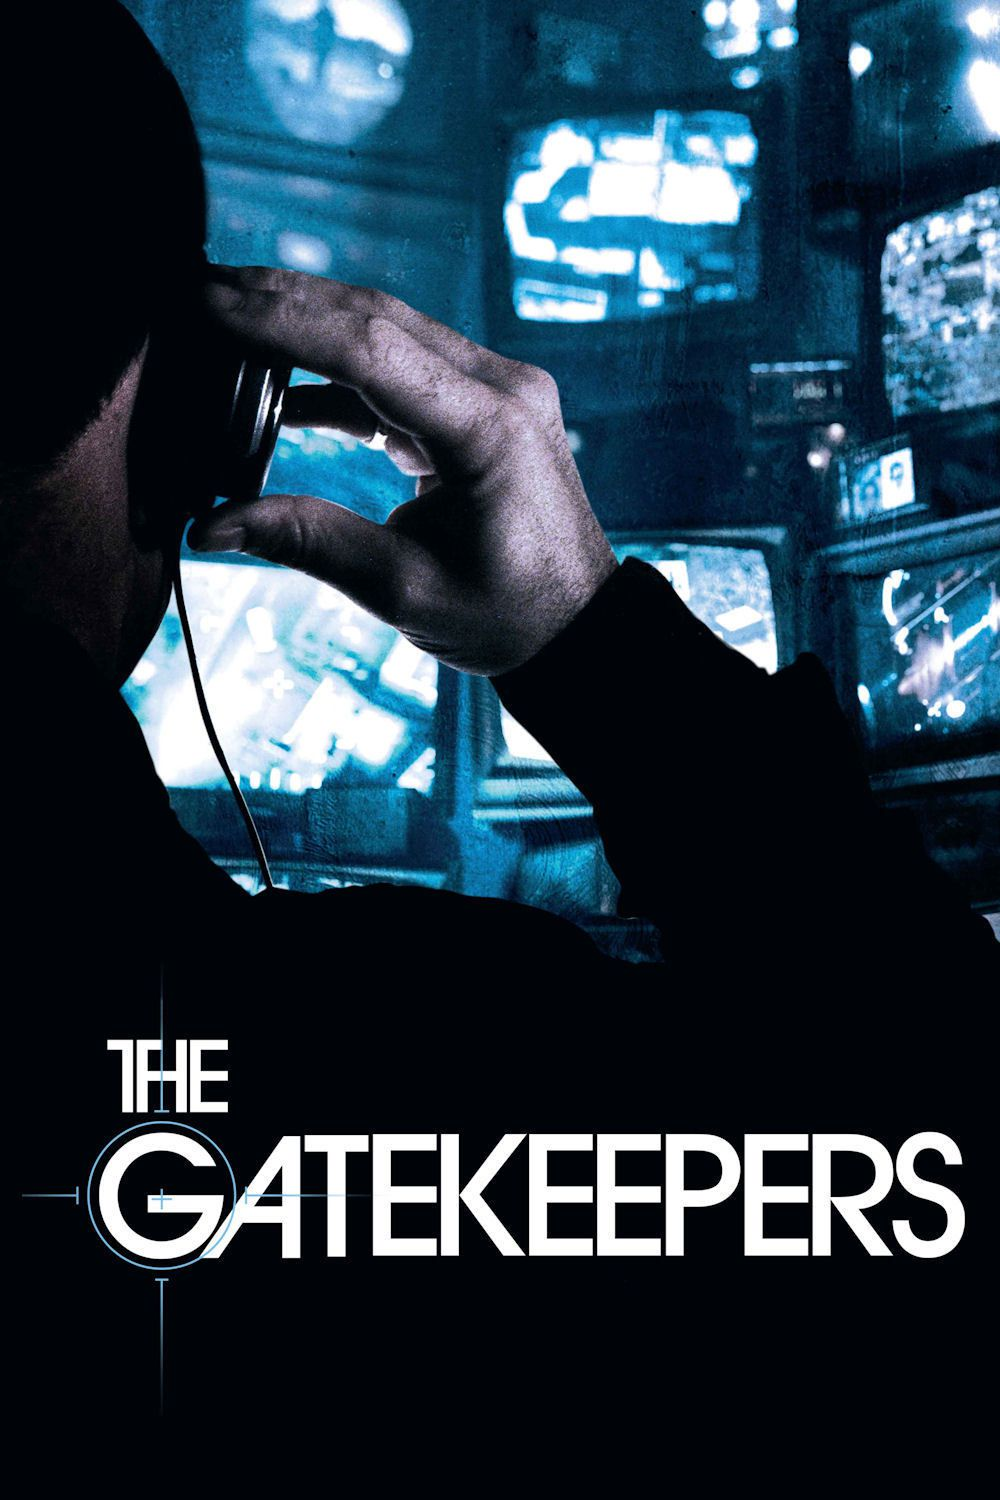 The Gatekeepers - Documentaire (2012)